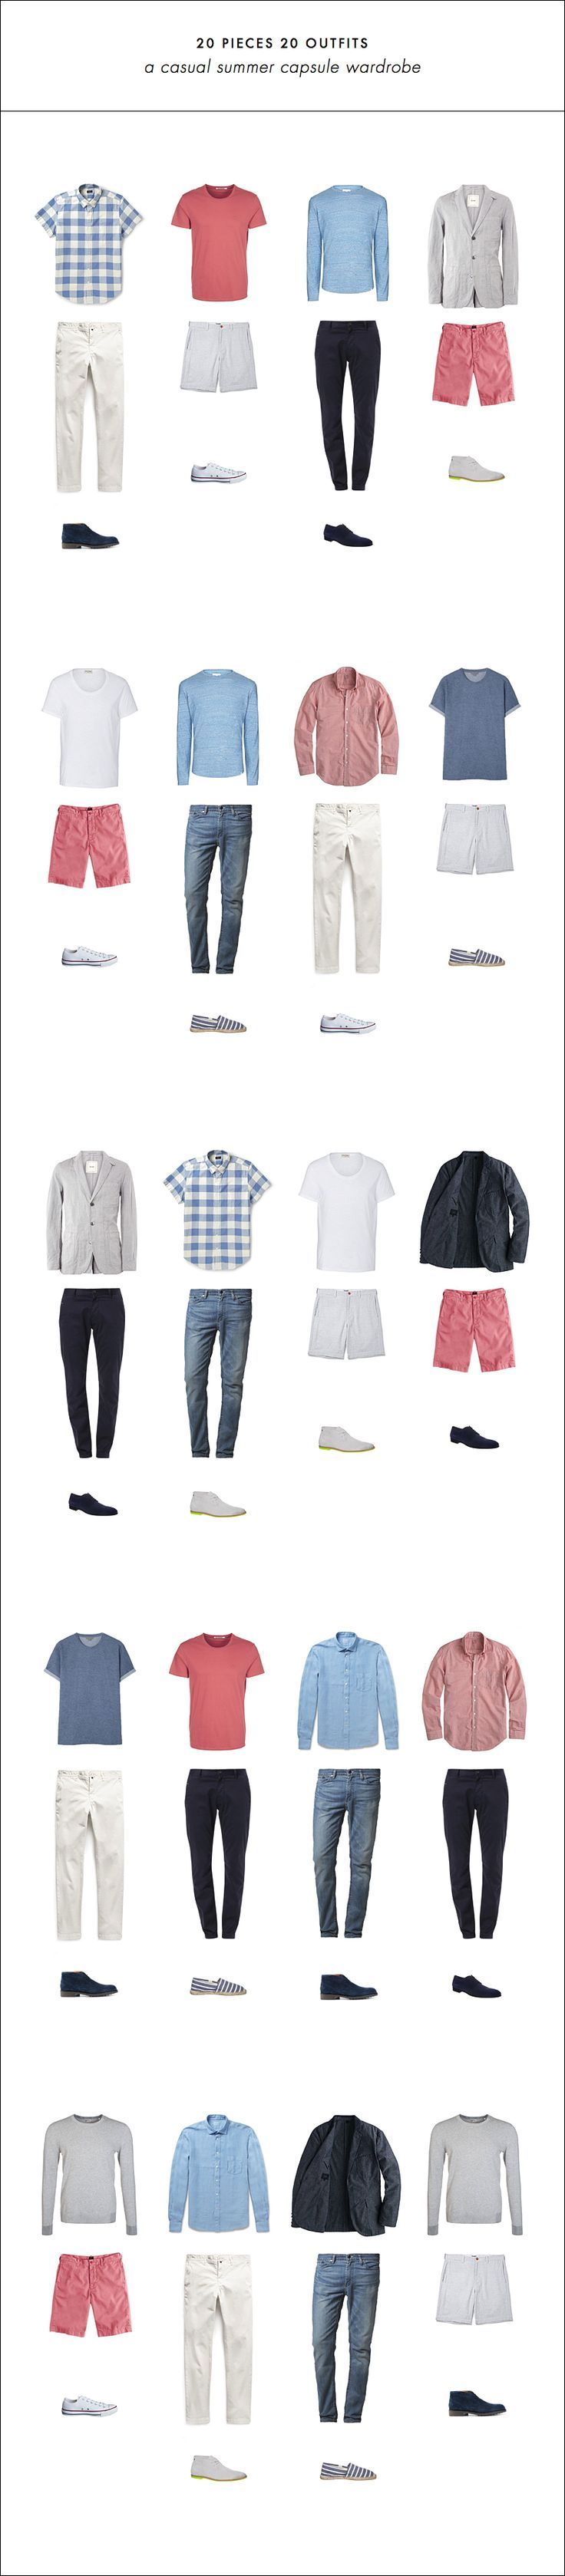 20 Summer Outfits | Guys Fashion